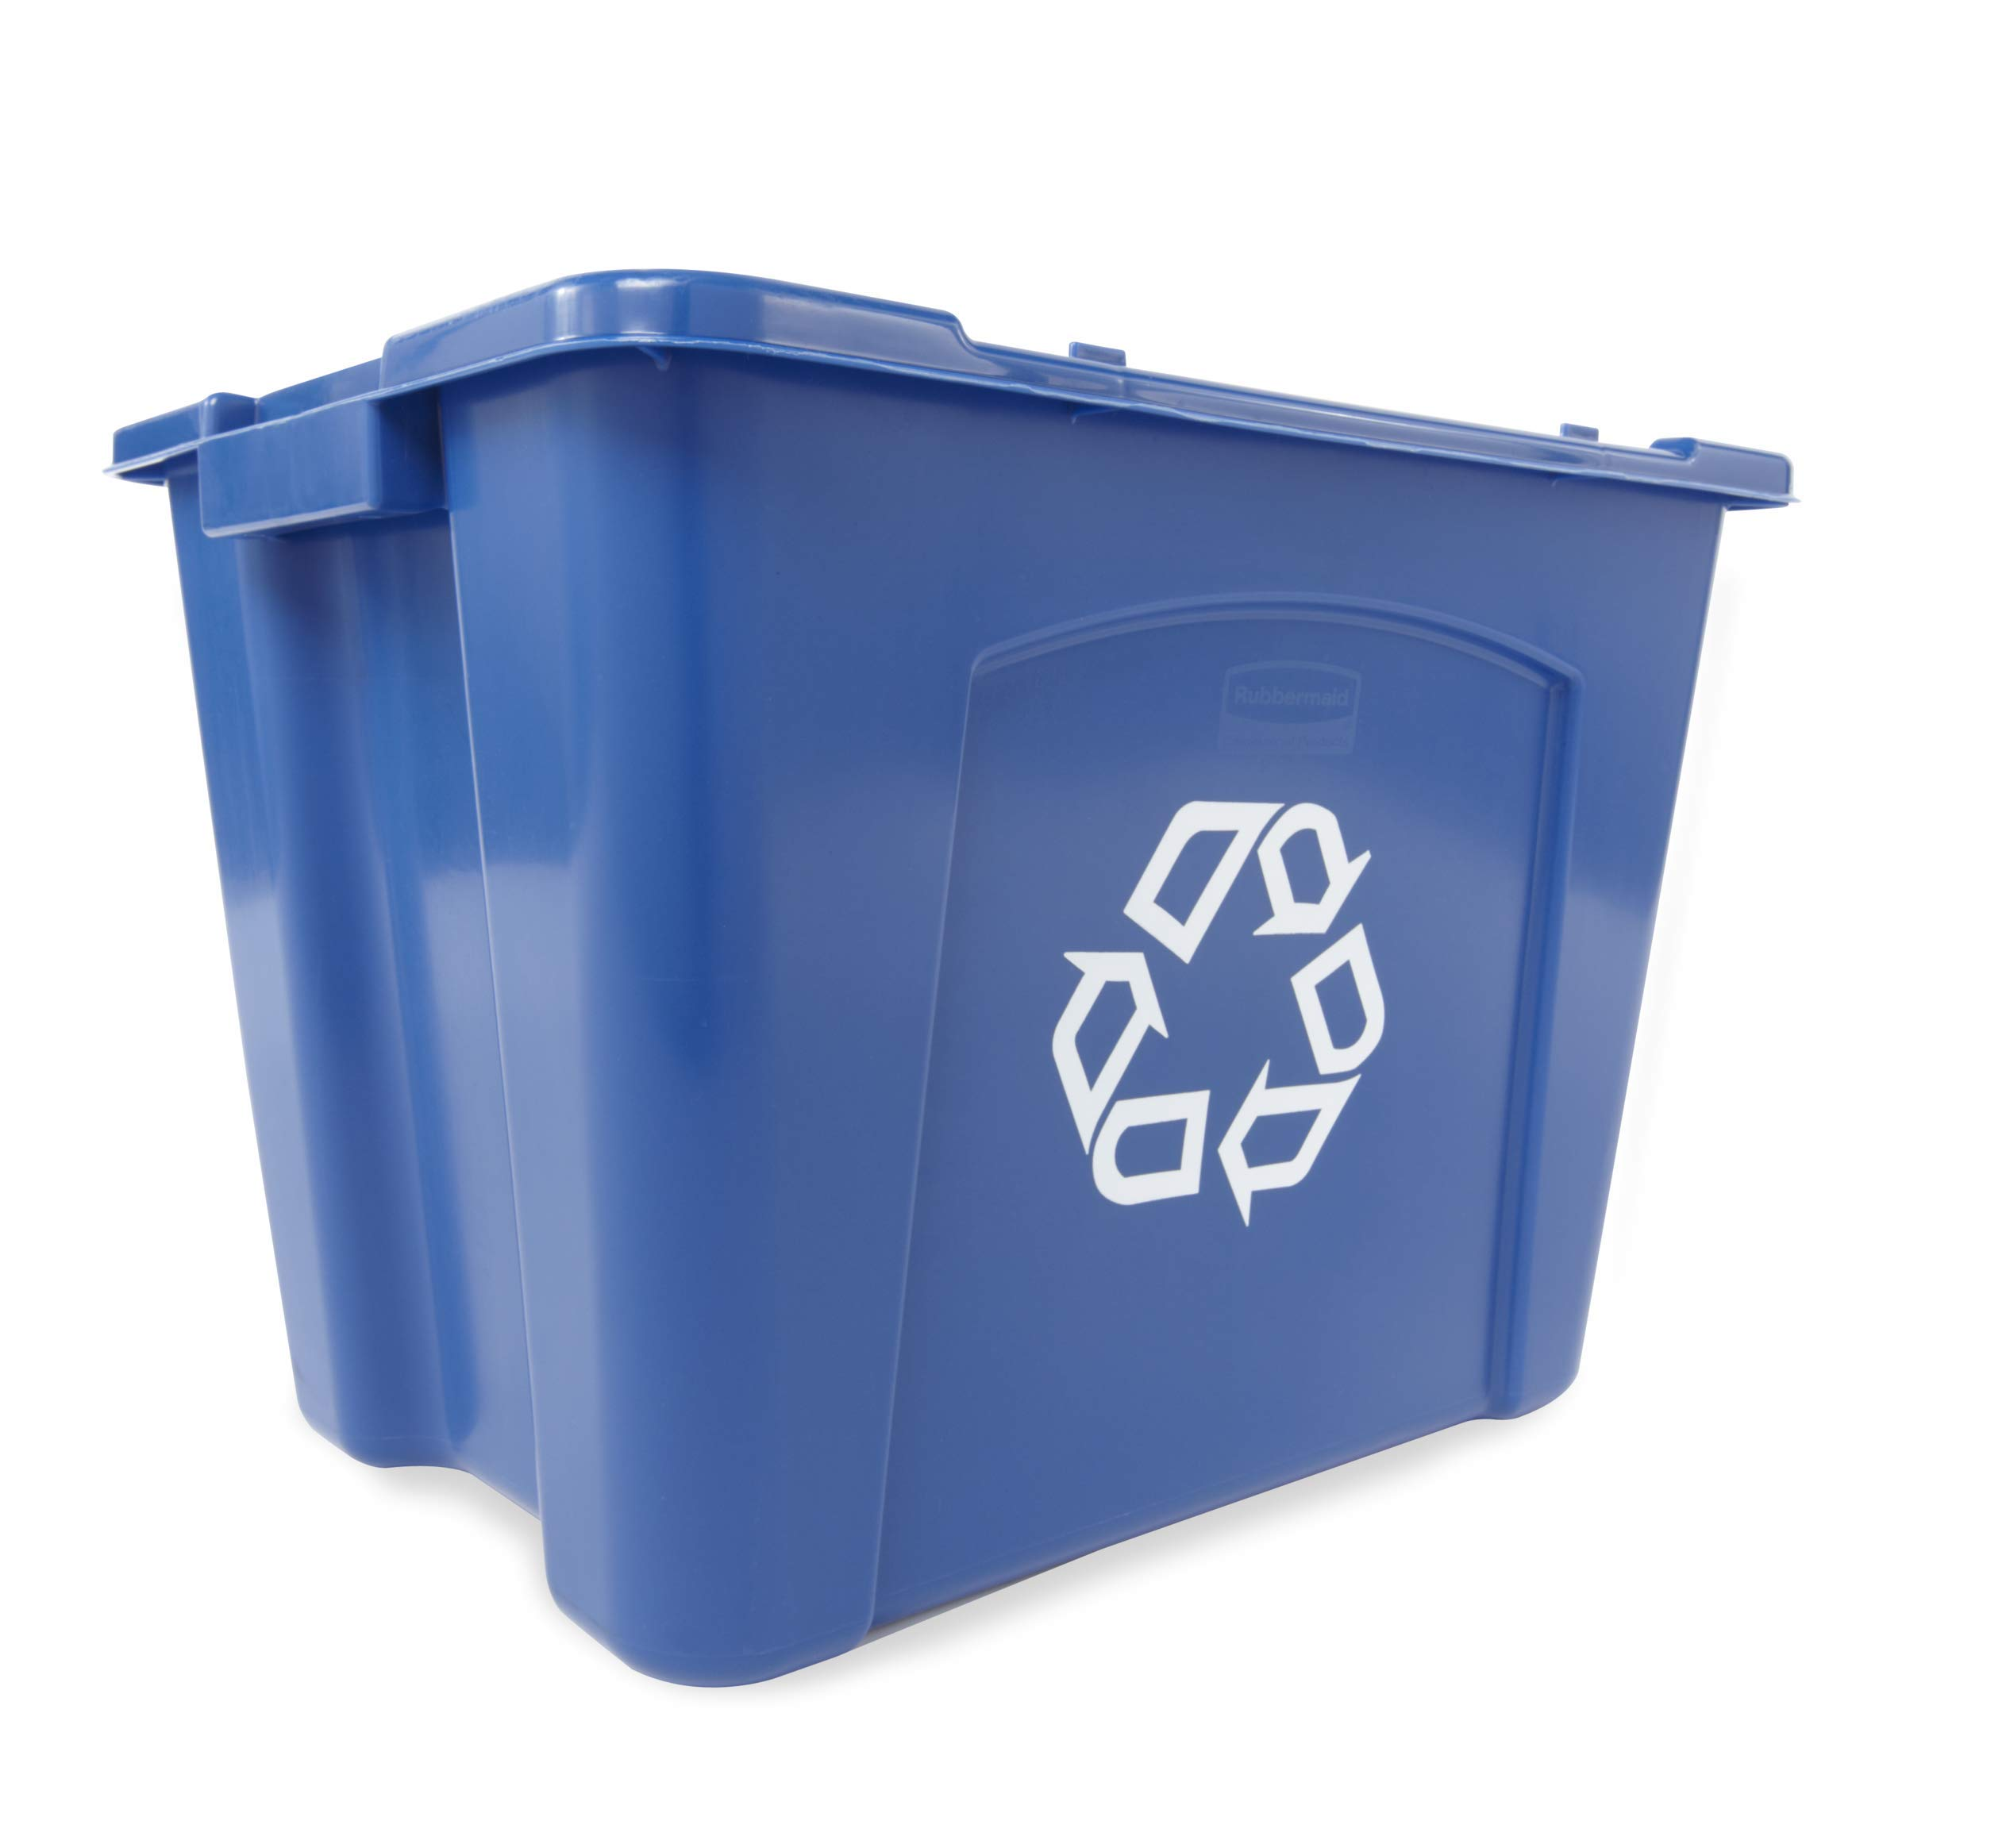 Rubbermaid Commercial Stackable Recycling Bin, 14 Gallon, Blue (Fg571473Blue) by Rubbermaid Commercial Products